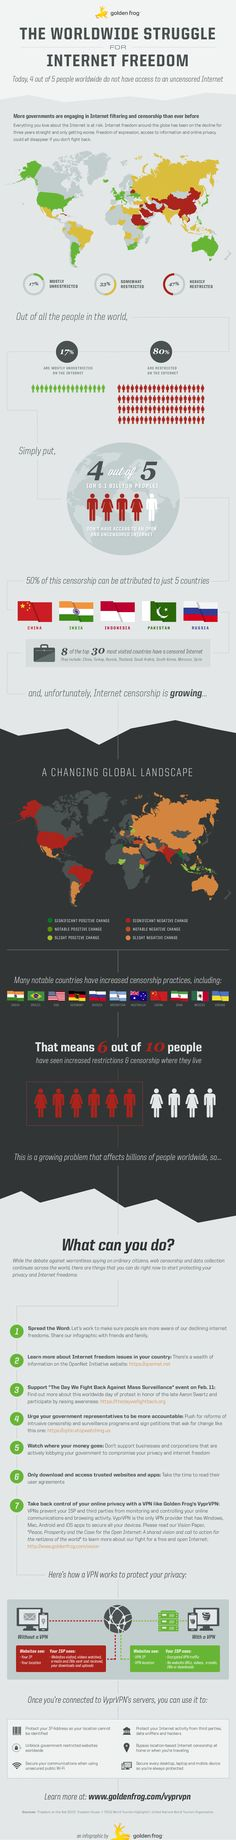 A real great infographic about Internet freedom, #censorship, #vpn and more!